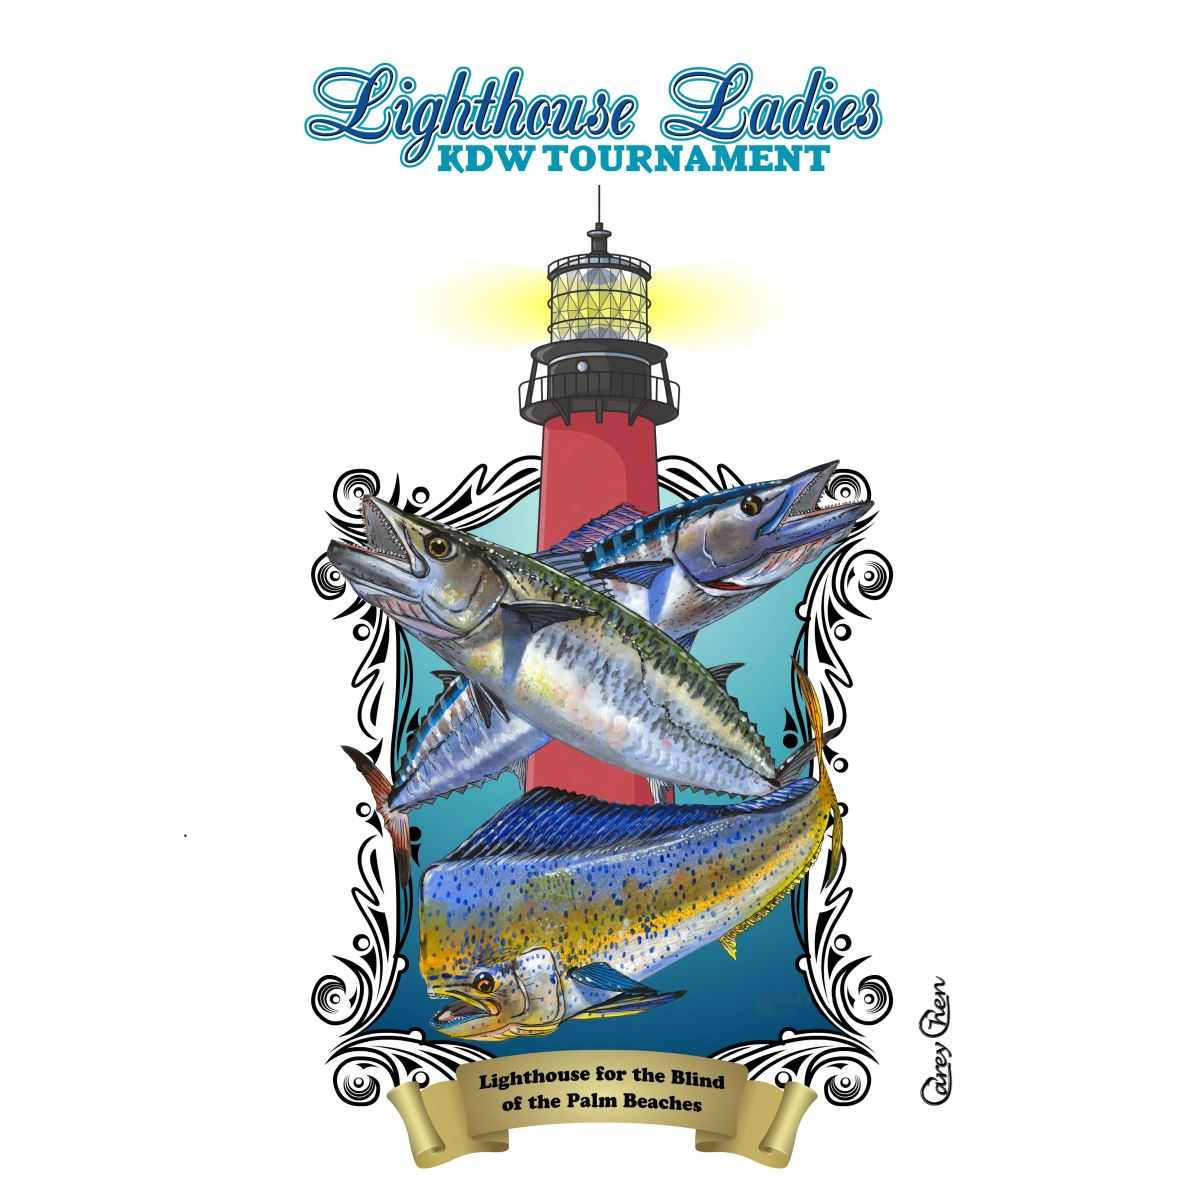 Lighthouse Ladies KDW Fishing Tournament logo